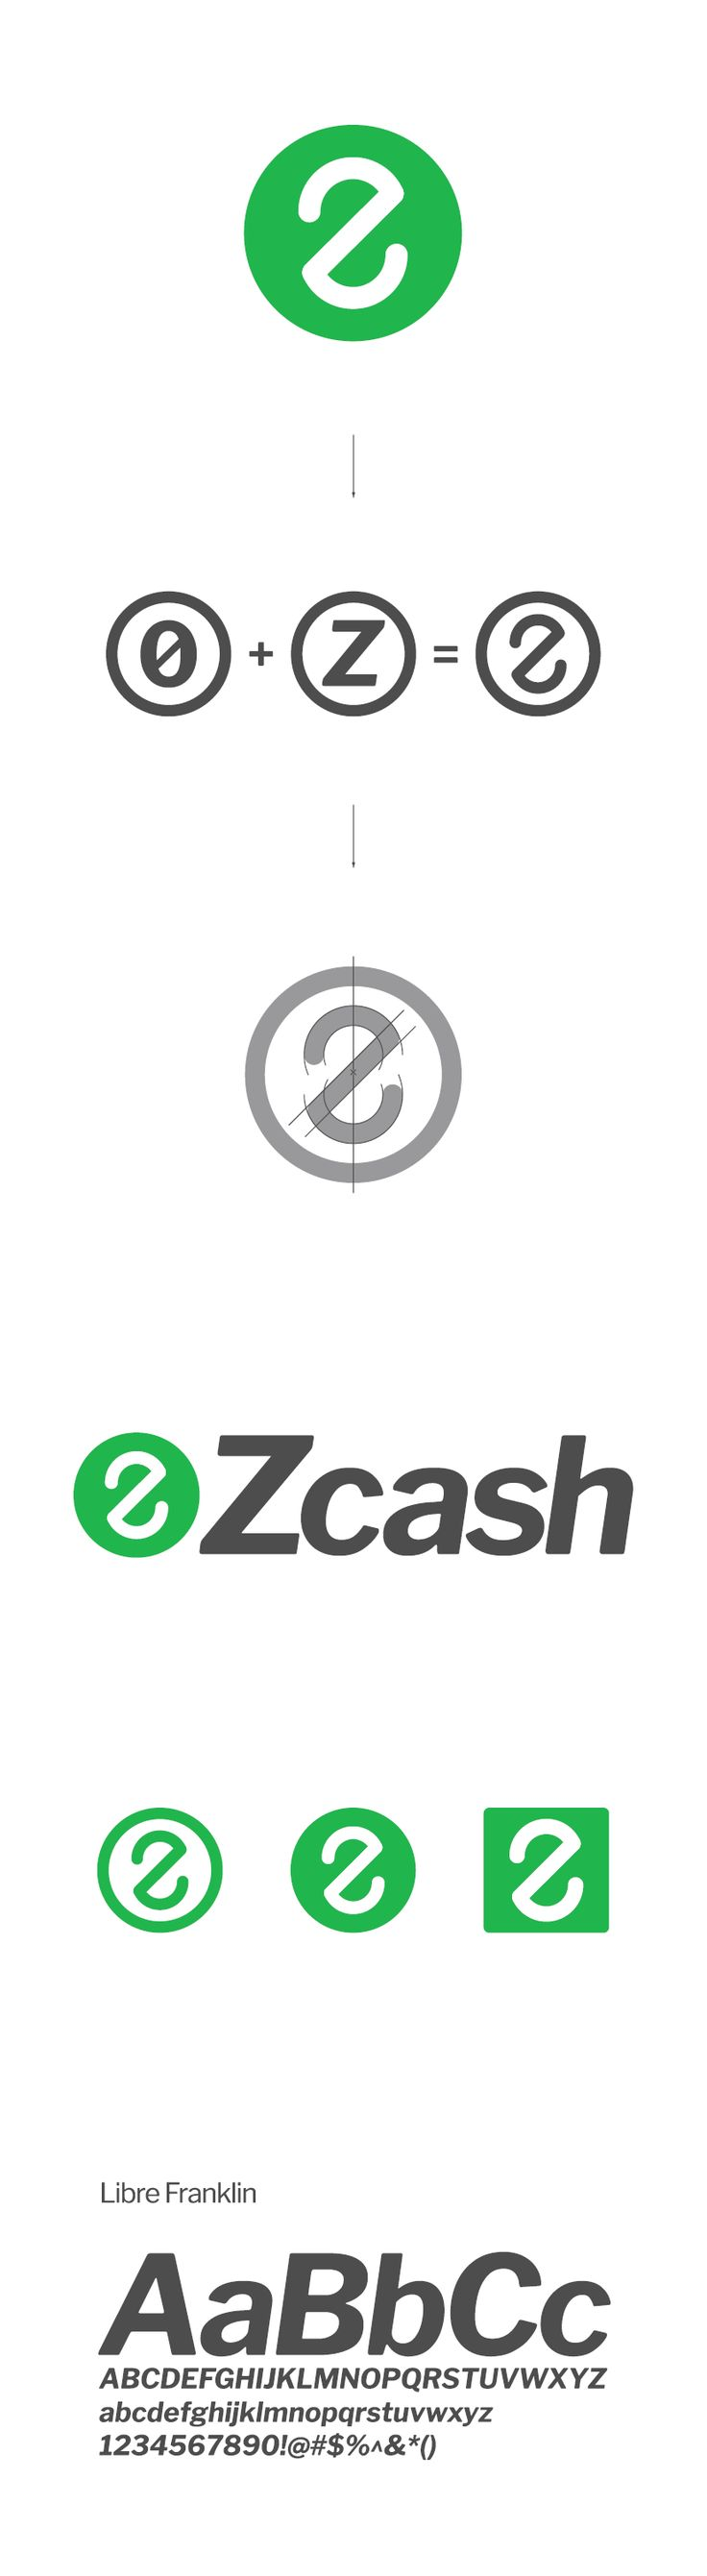 Zcash altcoin cryptocurrency bitcoin logo visual identity id branding